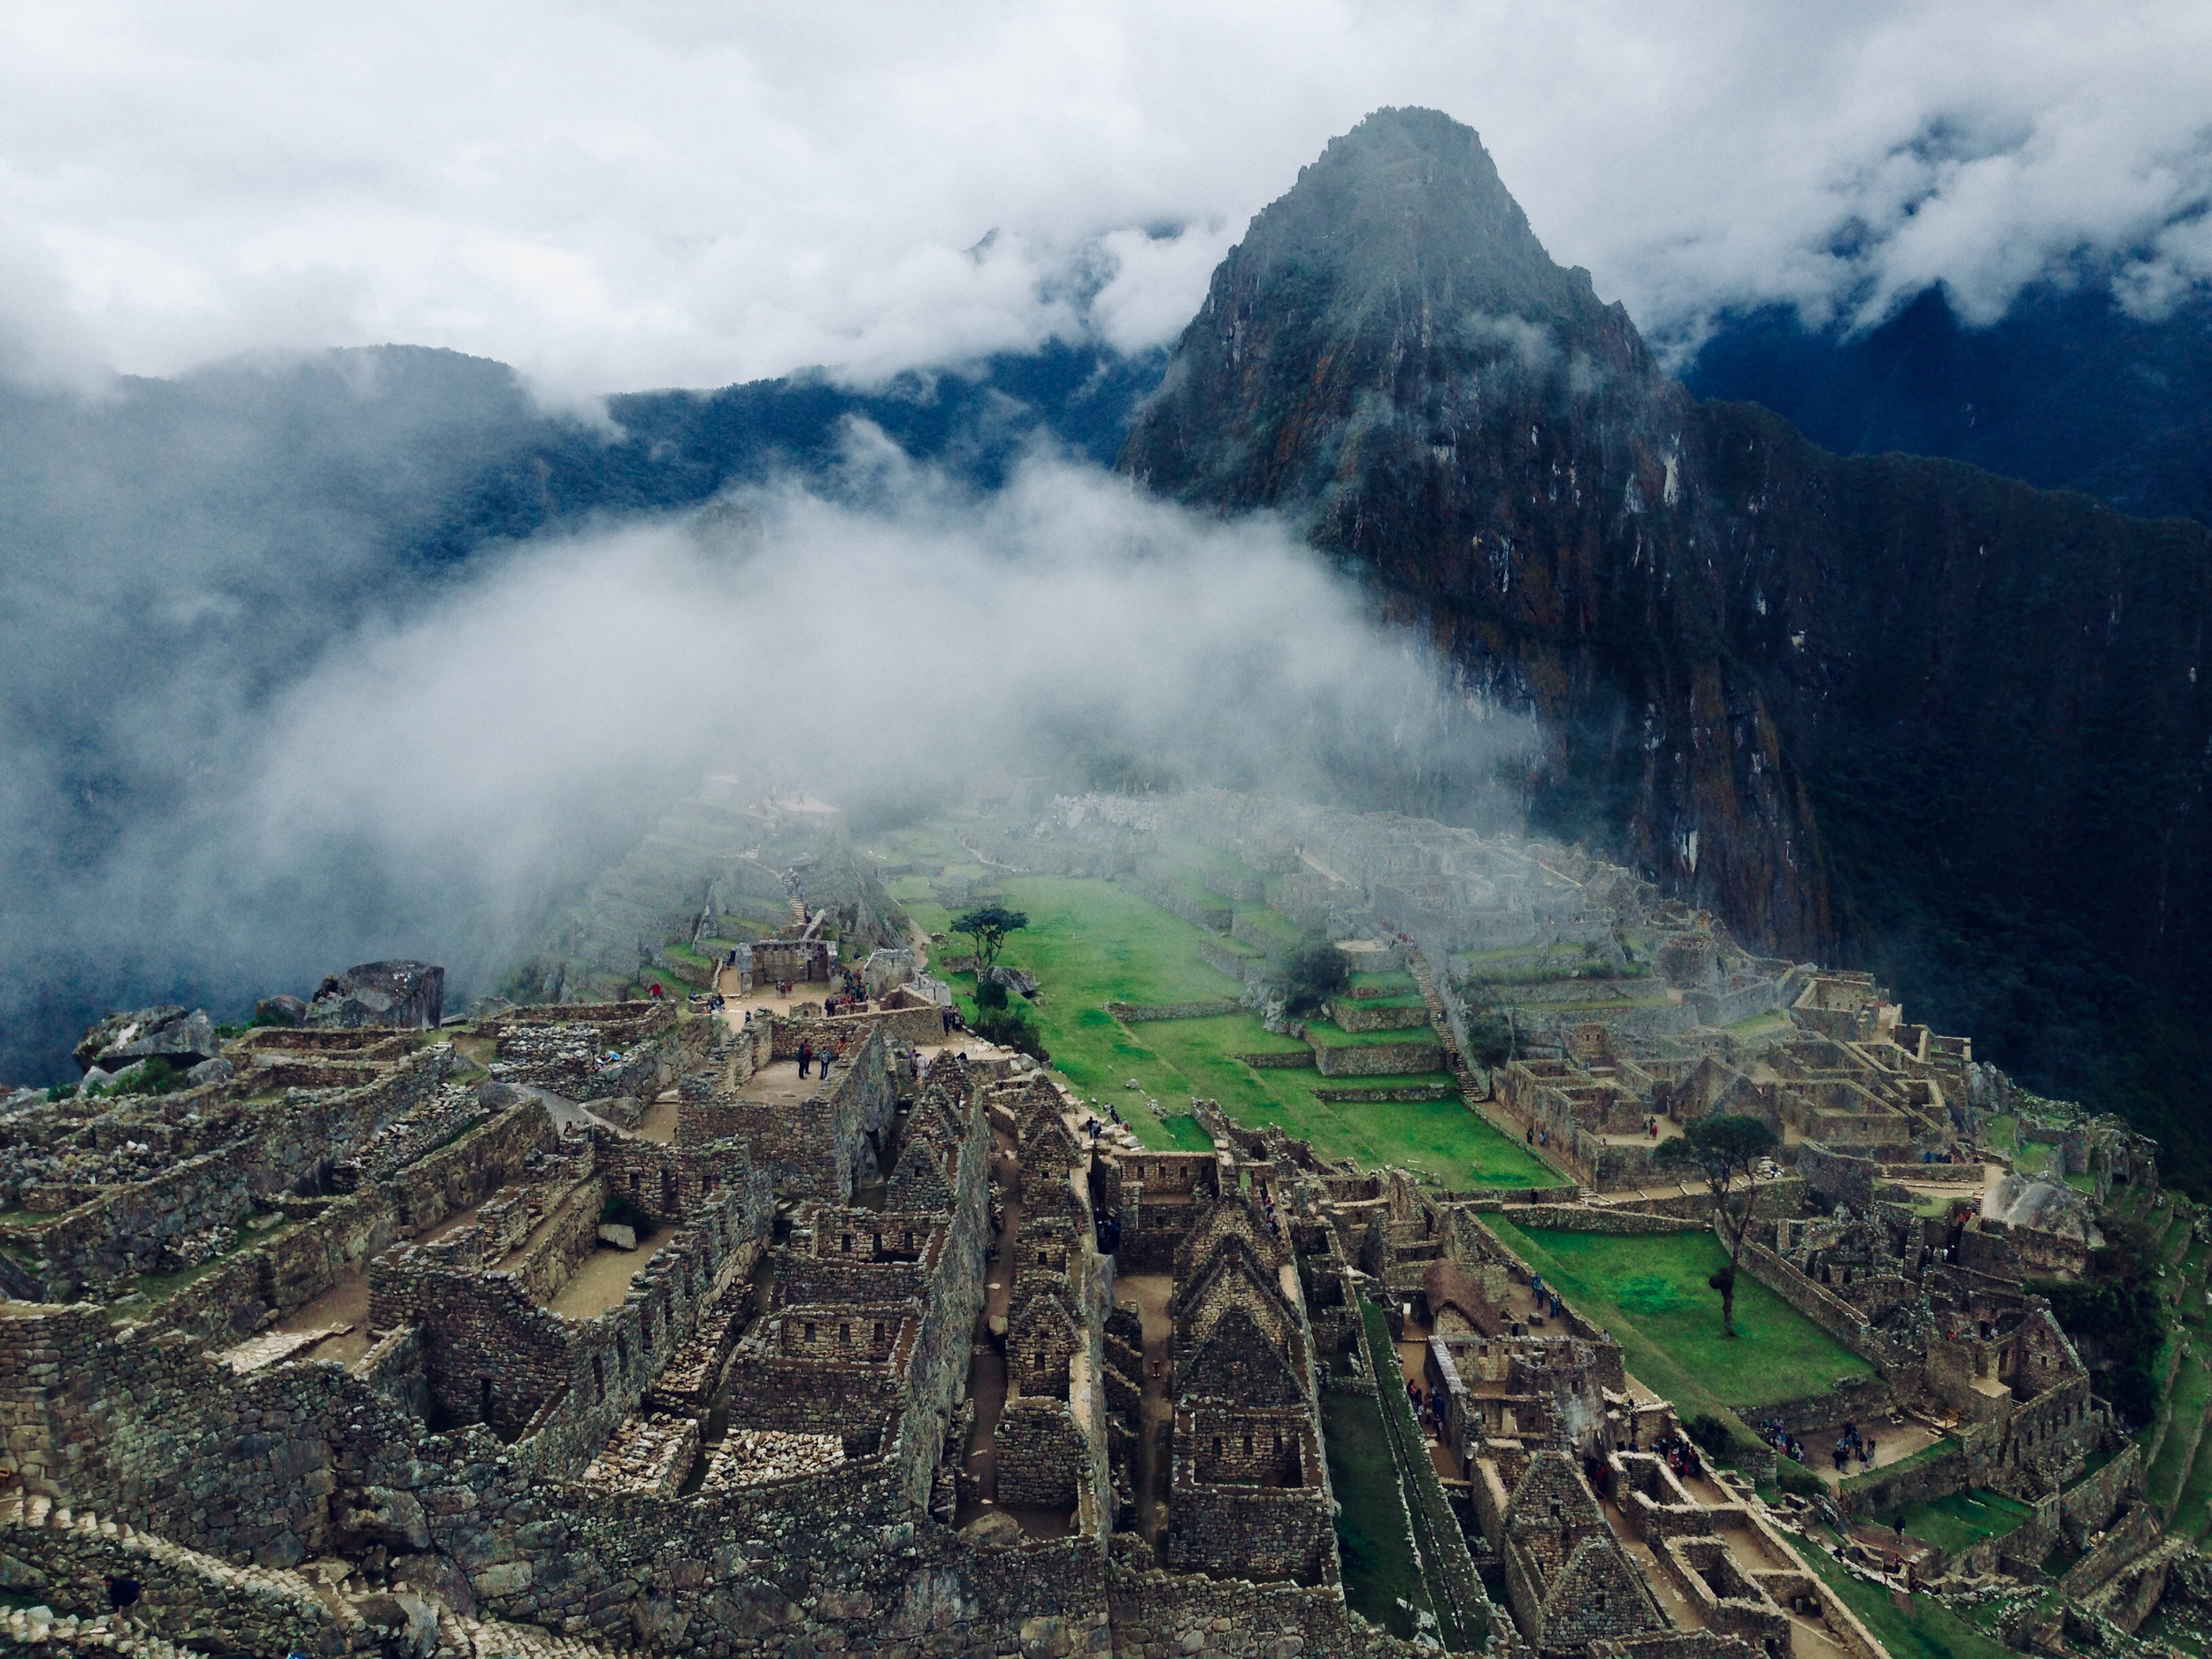 Sacred Land of the Incas - Experience the untouched, evergreen splendor of the Amazon Jungle. Explore rainforest trails with a local guide, looking out for monkeys, parrots and medicinal plants, then fall asleep in a lodge lit by candles and kerosene lamps.14 nights from $3,476*(NZD)Travel Period: Selected travel dates and subject to tour timings